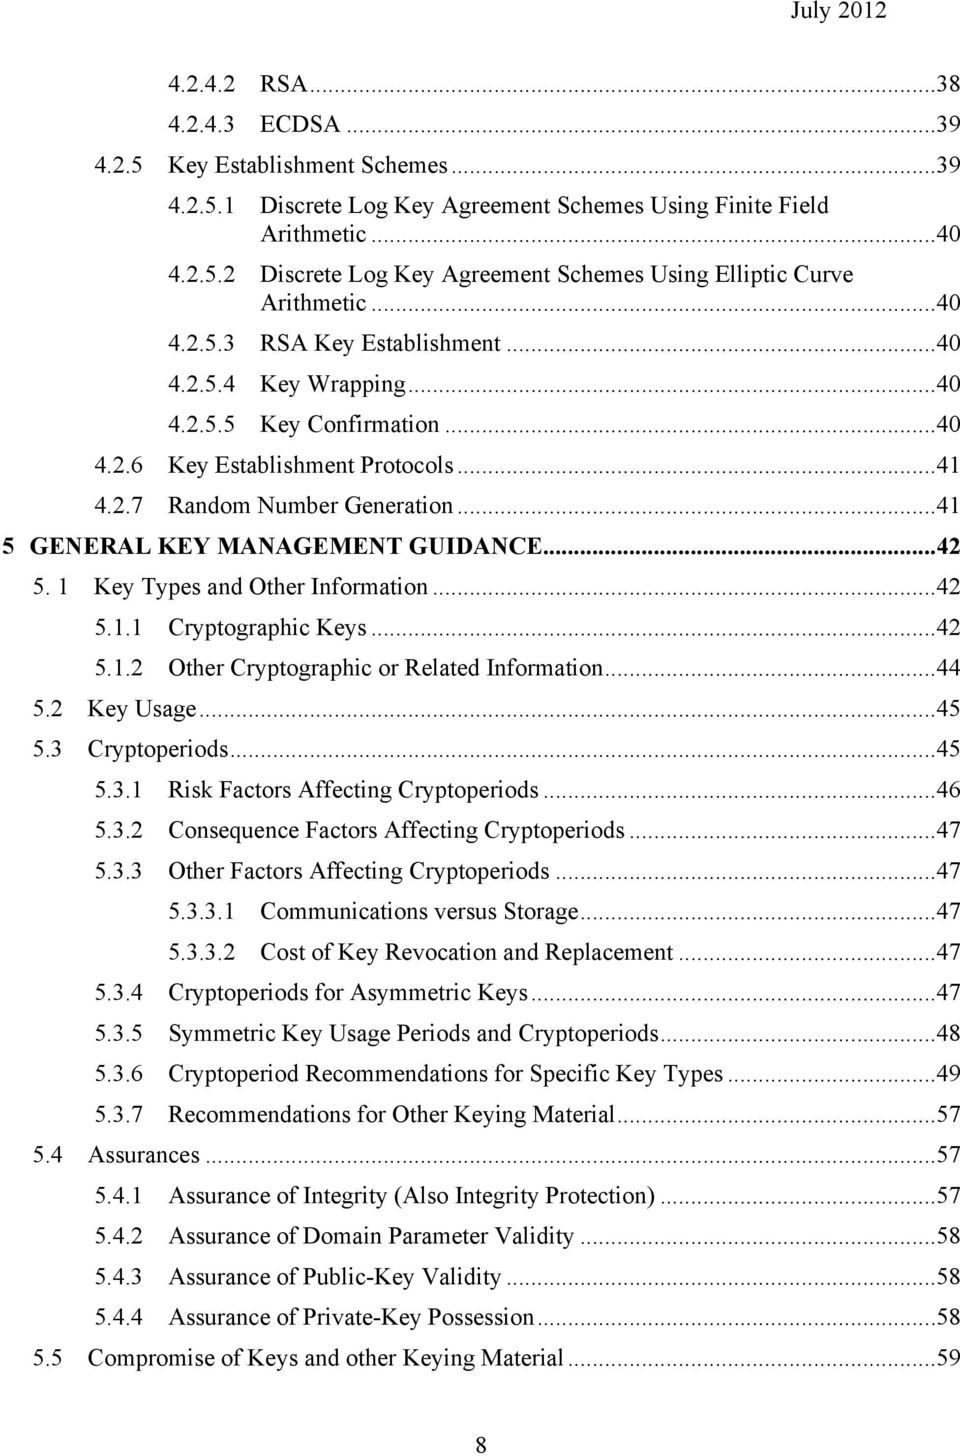 ..41 5 GENERAL KEY MANAGEMENT GUIDANCE...42 5. 1 Key Types and Other Information...42 5.1.1 Cryptographic Keys...42 5.1.2 Other Cryptographic or Related Information...44 5.2 Key Usage...45 5.